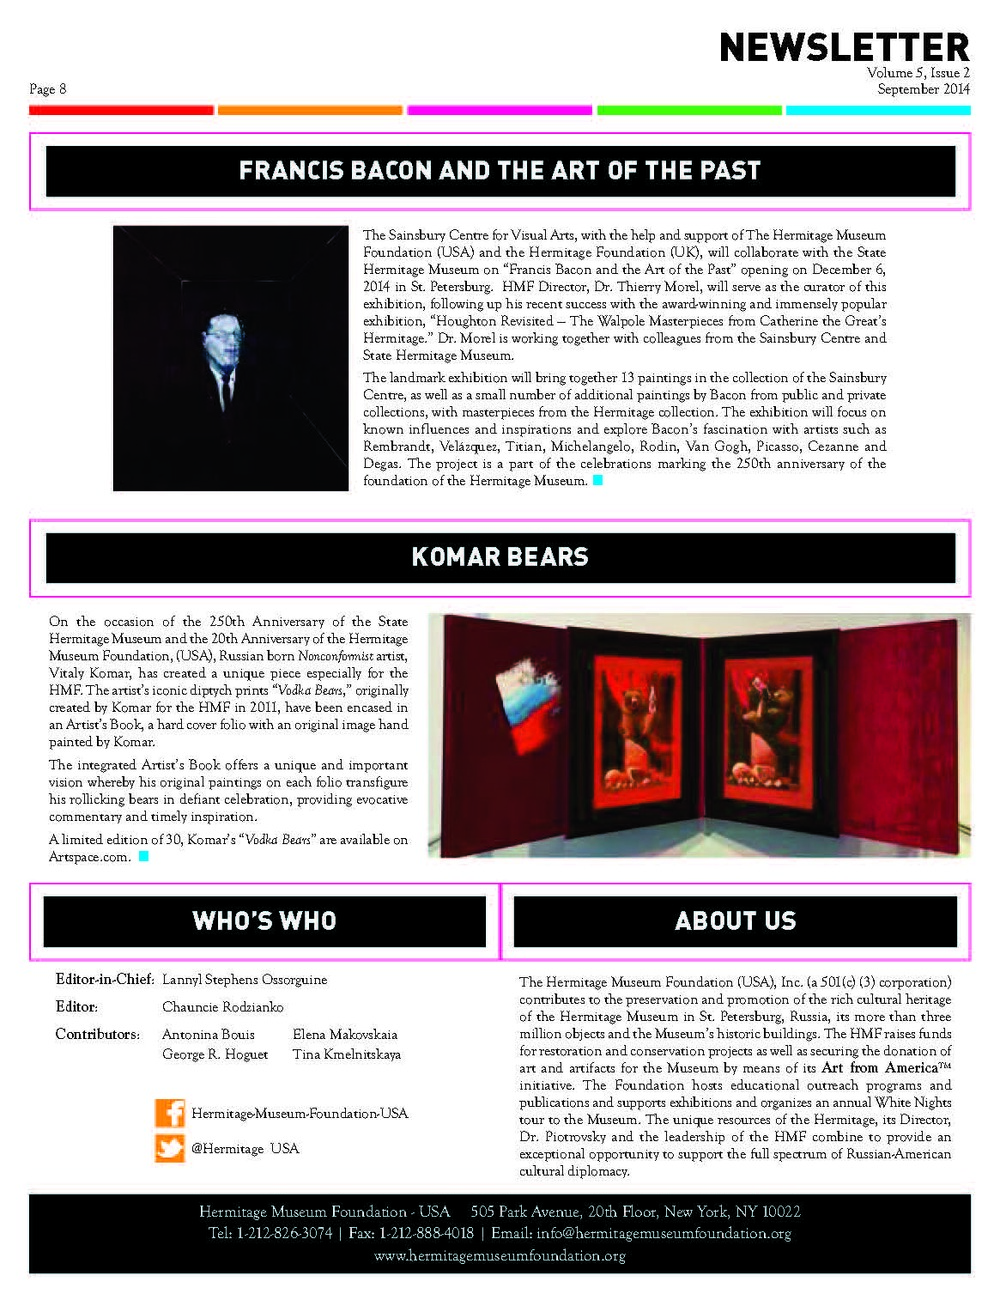 Hermitage_Museum_Foundation_Newsletter_FINAL_Sept._2014_Page_8.jpg